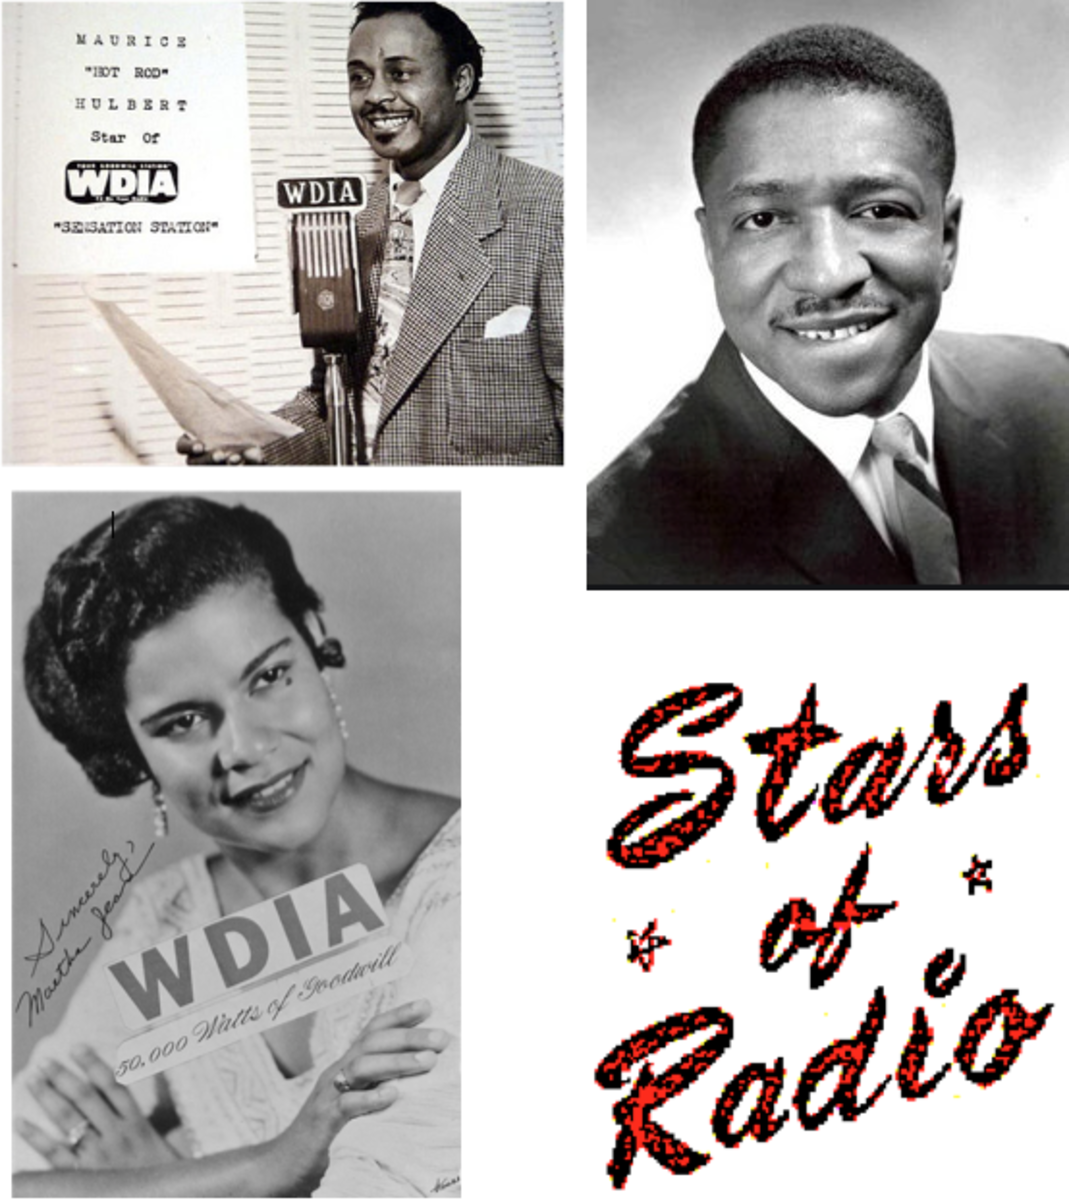 """Top left to right: Maurice """"Hot Rod"""" Hulbert, Robert """"Honeyboy"""" Thomas, and Martha Jean, """"the Queen"""" Steinberg, were some of the many radio stars at WDIA."""